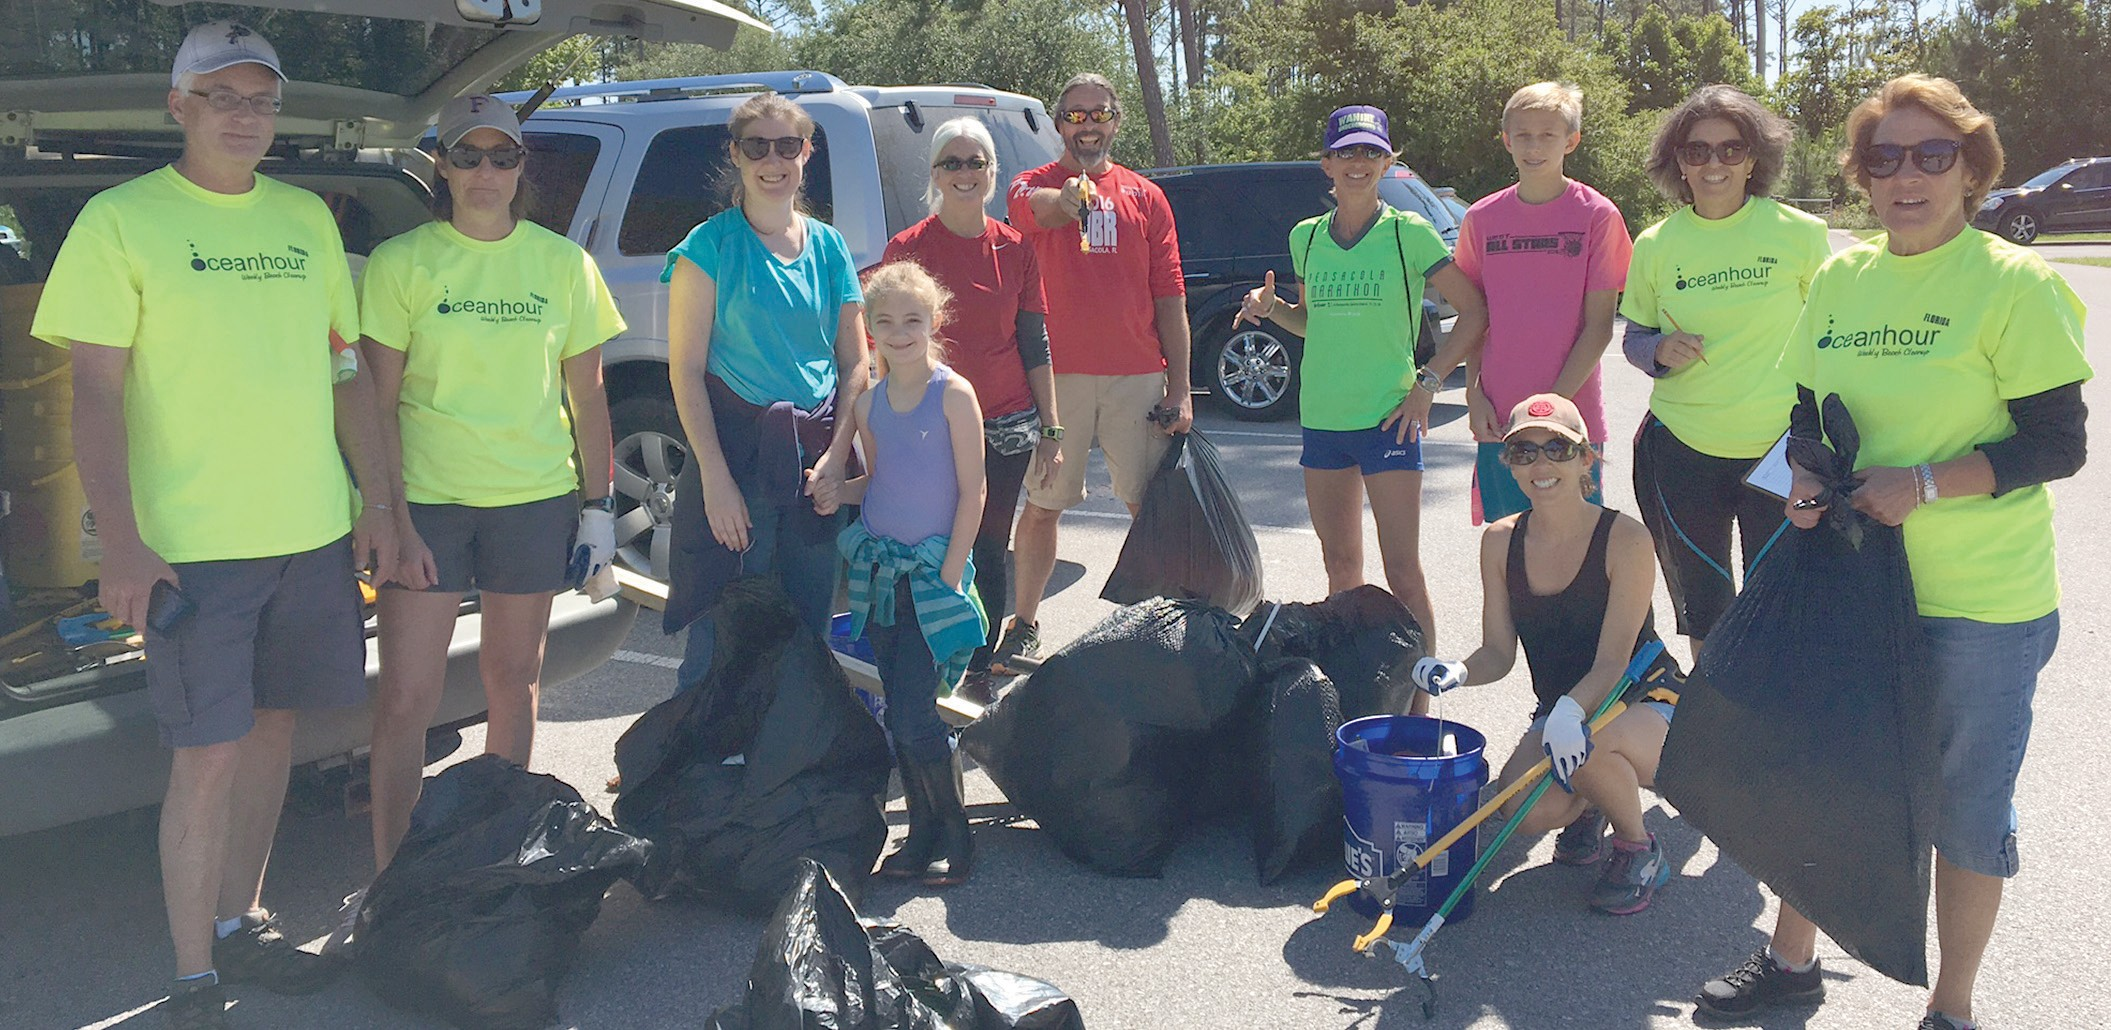 """""""Volunteers with Ocean Hour gather after combing the Naval Live Oaks Seashore in Gulf Breeze for litter and collecting it in trash bags"""" - Lisa Newell."""